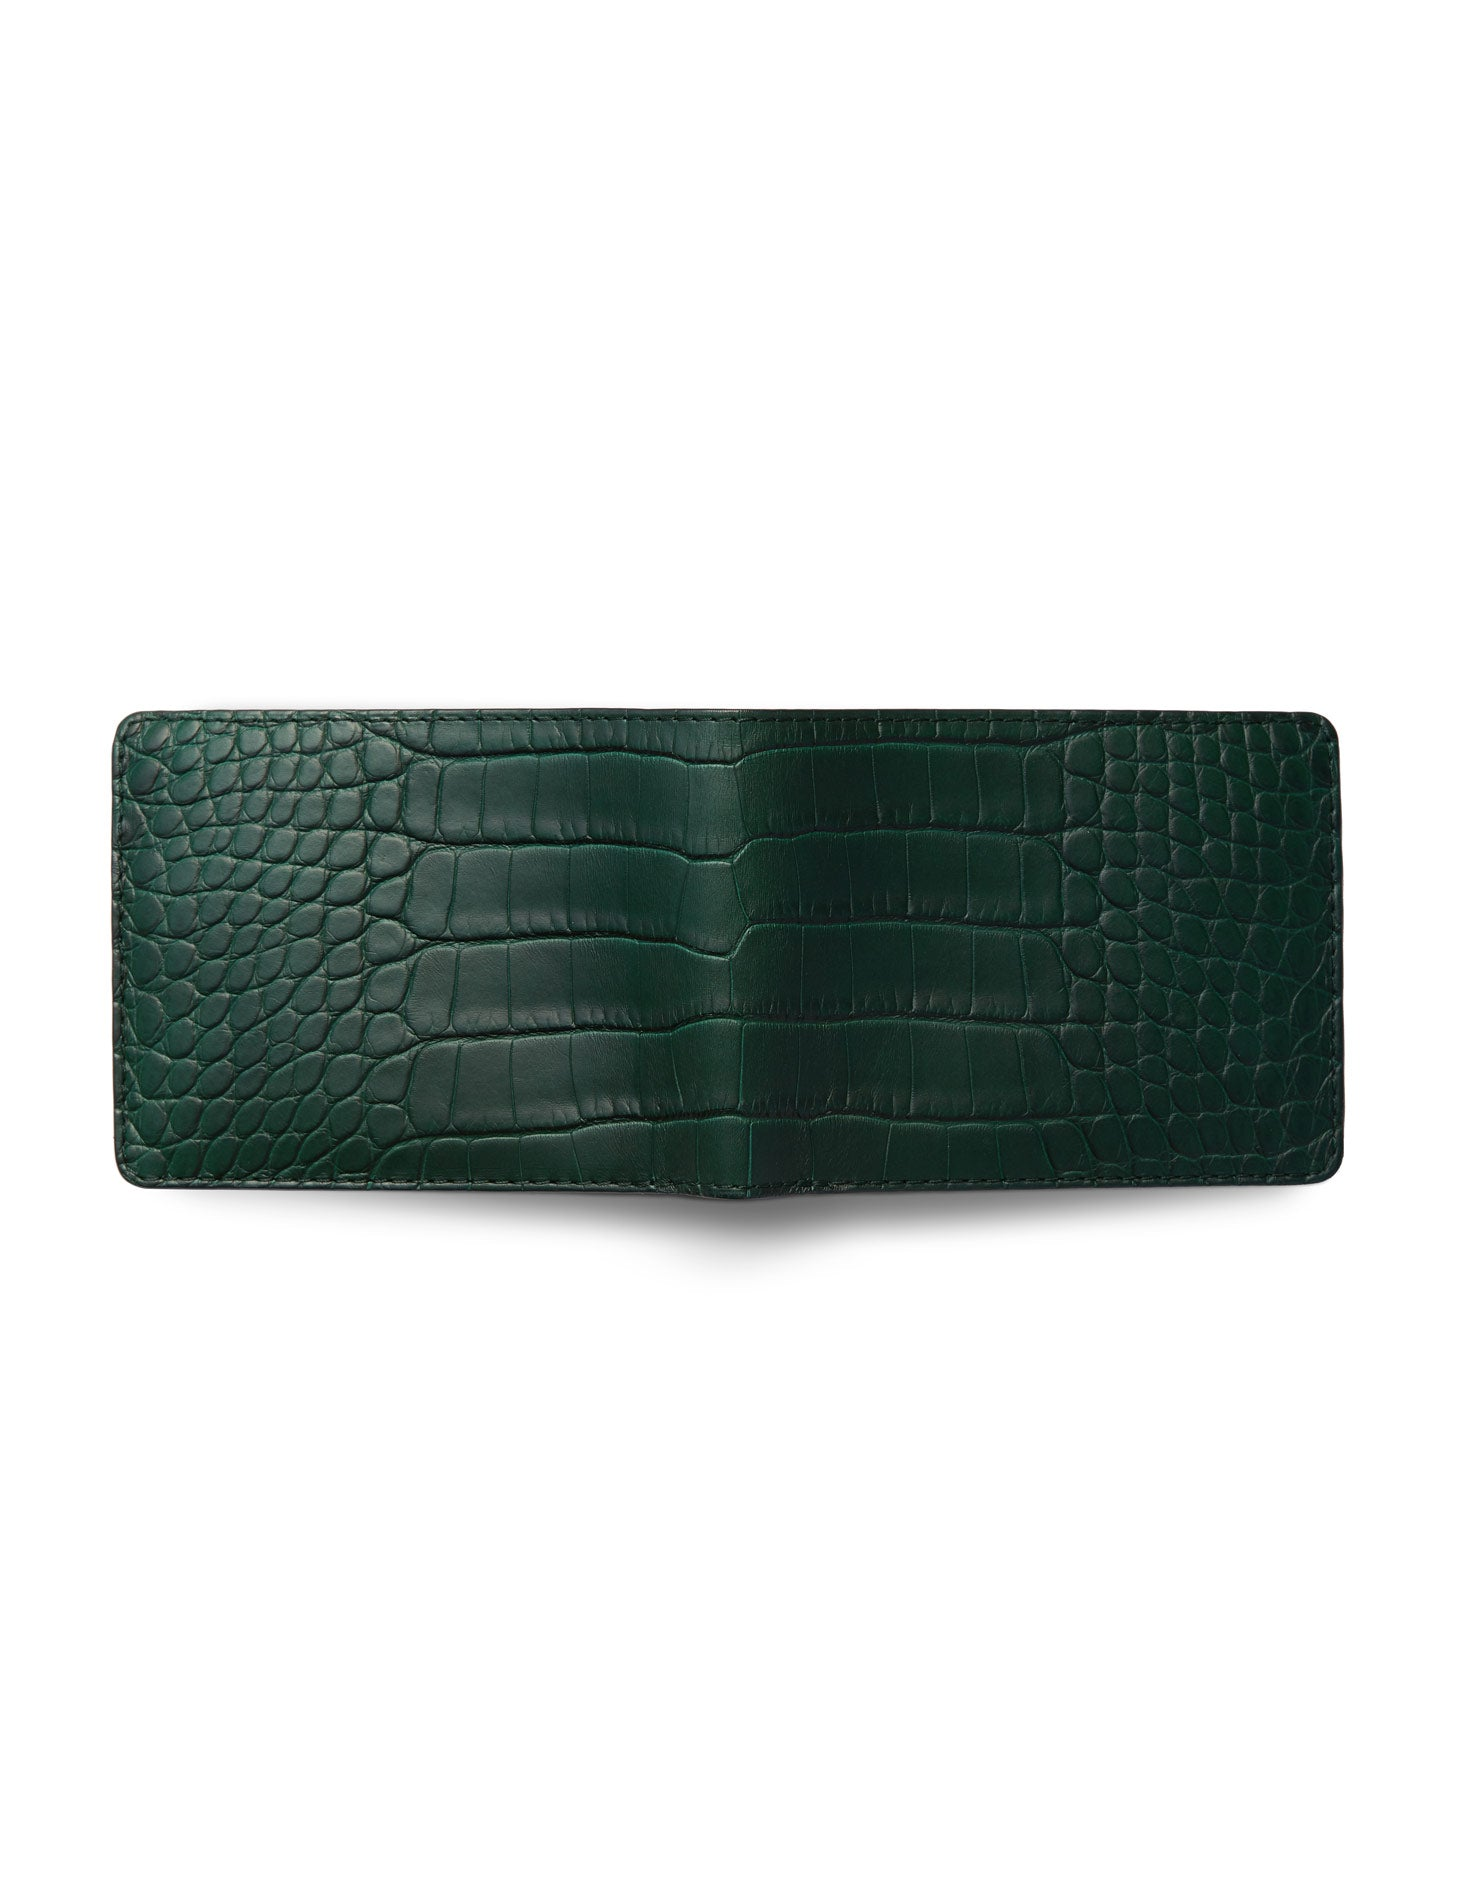 David August Luxury Genuine Alligator Bi-Fold Wallet